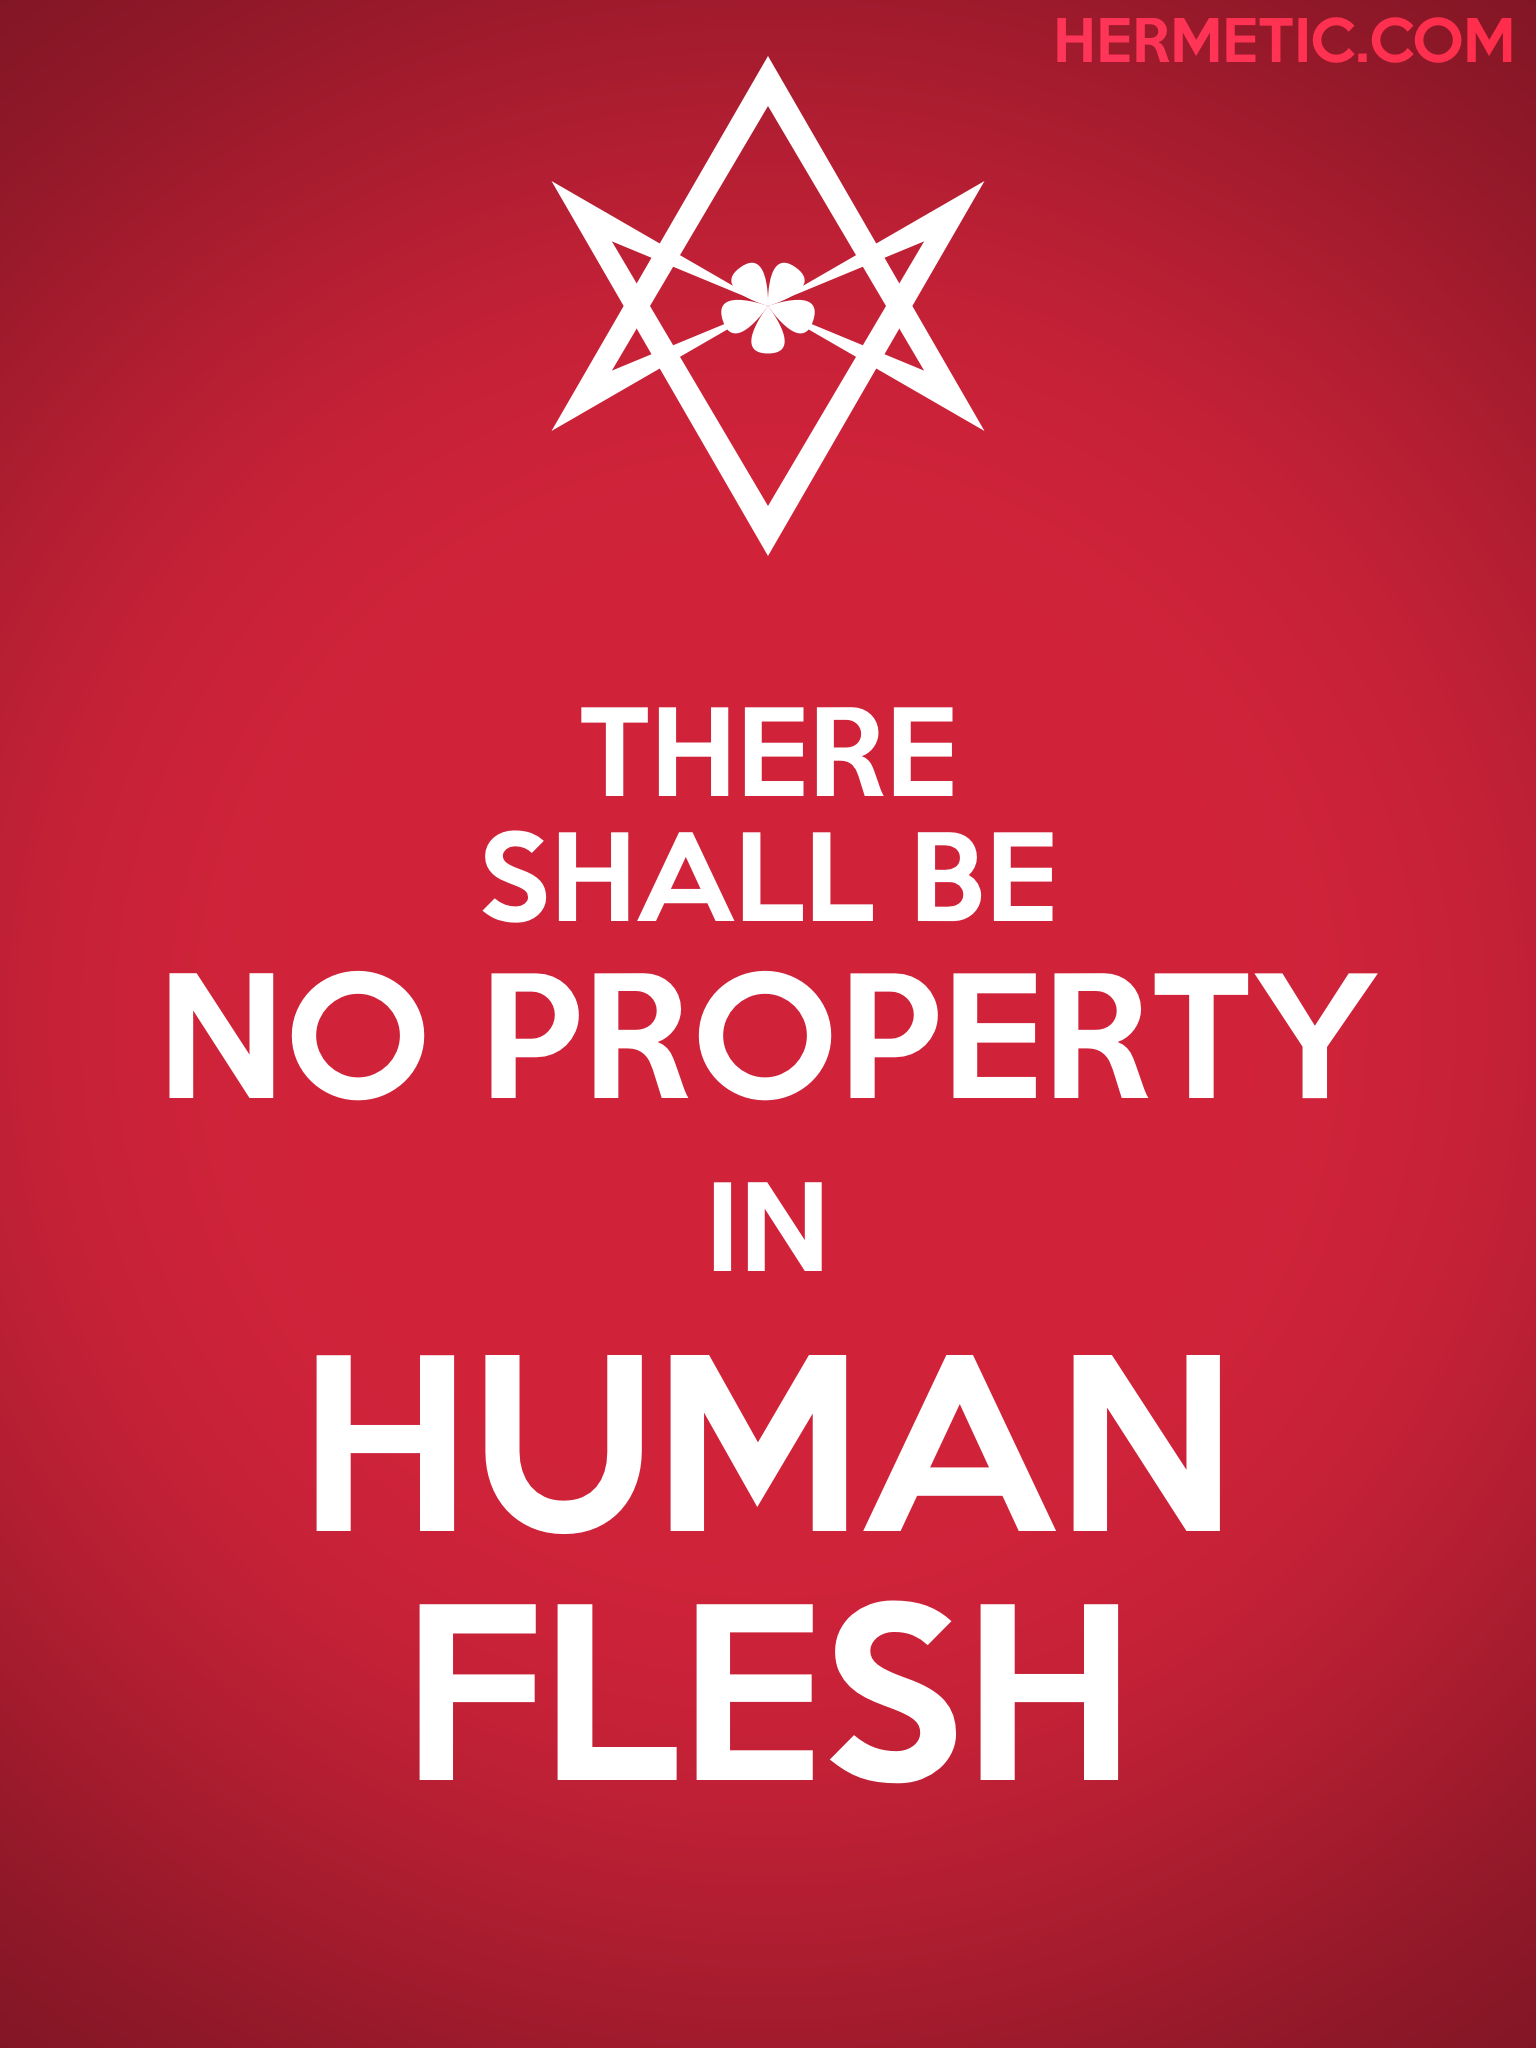 Unicursal HUMAN FLESH Propaganda Poster from  Hermetic Library Office of the Ministry of Information